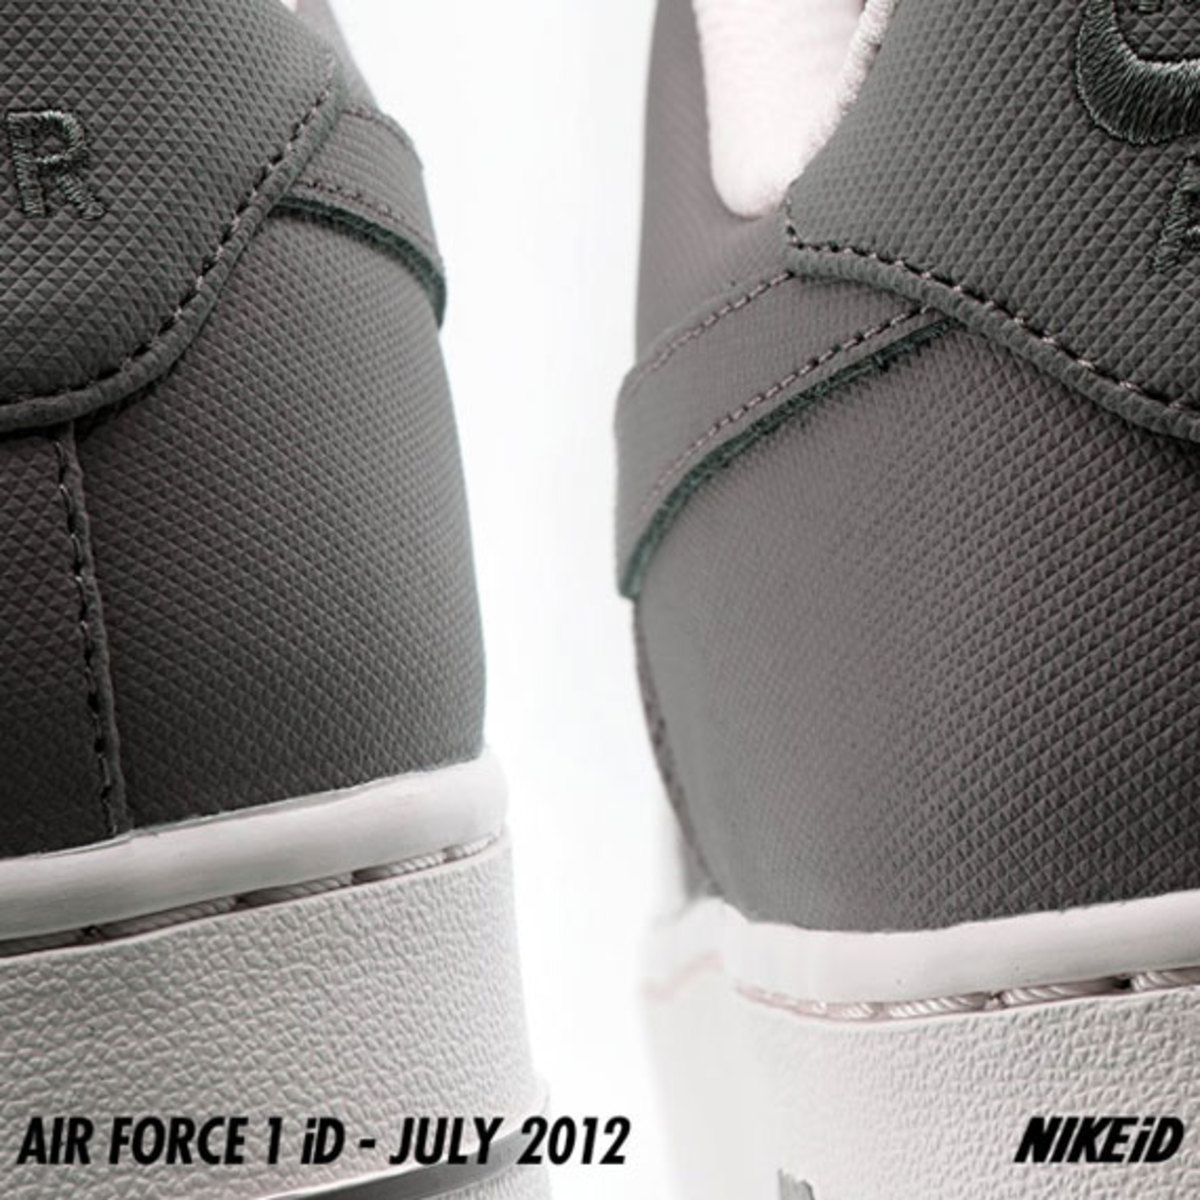 nikeid-air-force-1-id-tactical-mesh-grip-